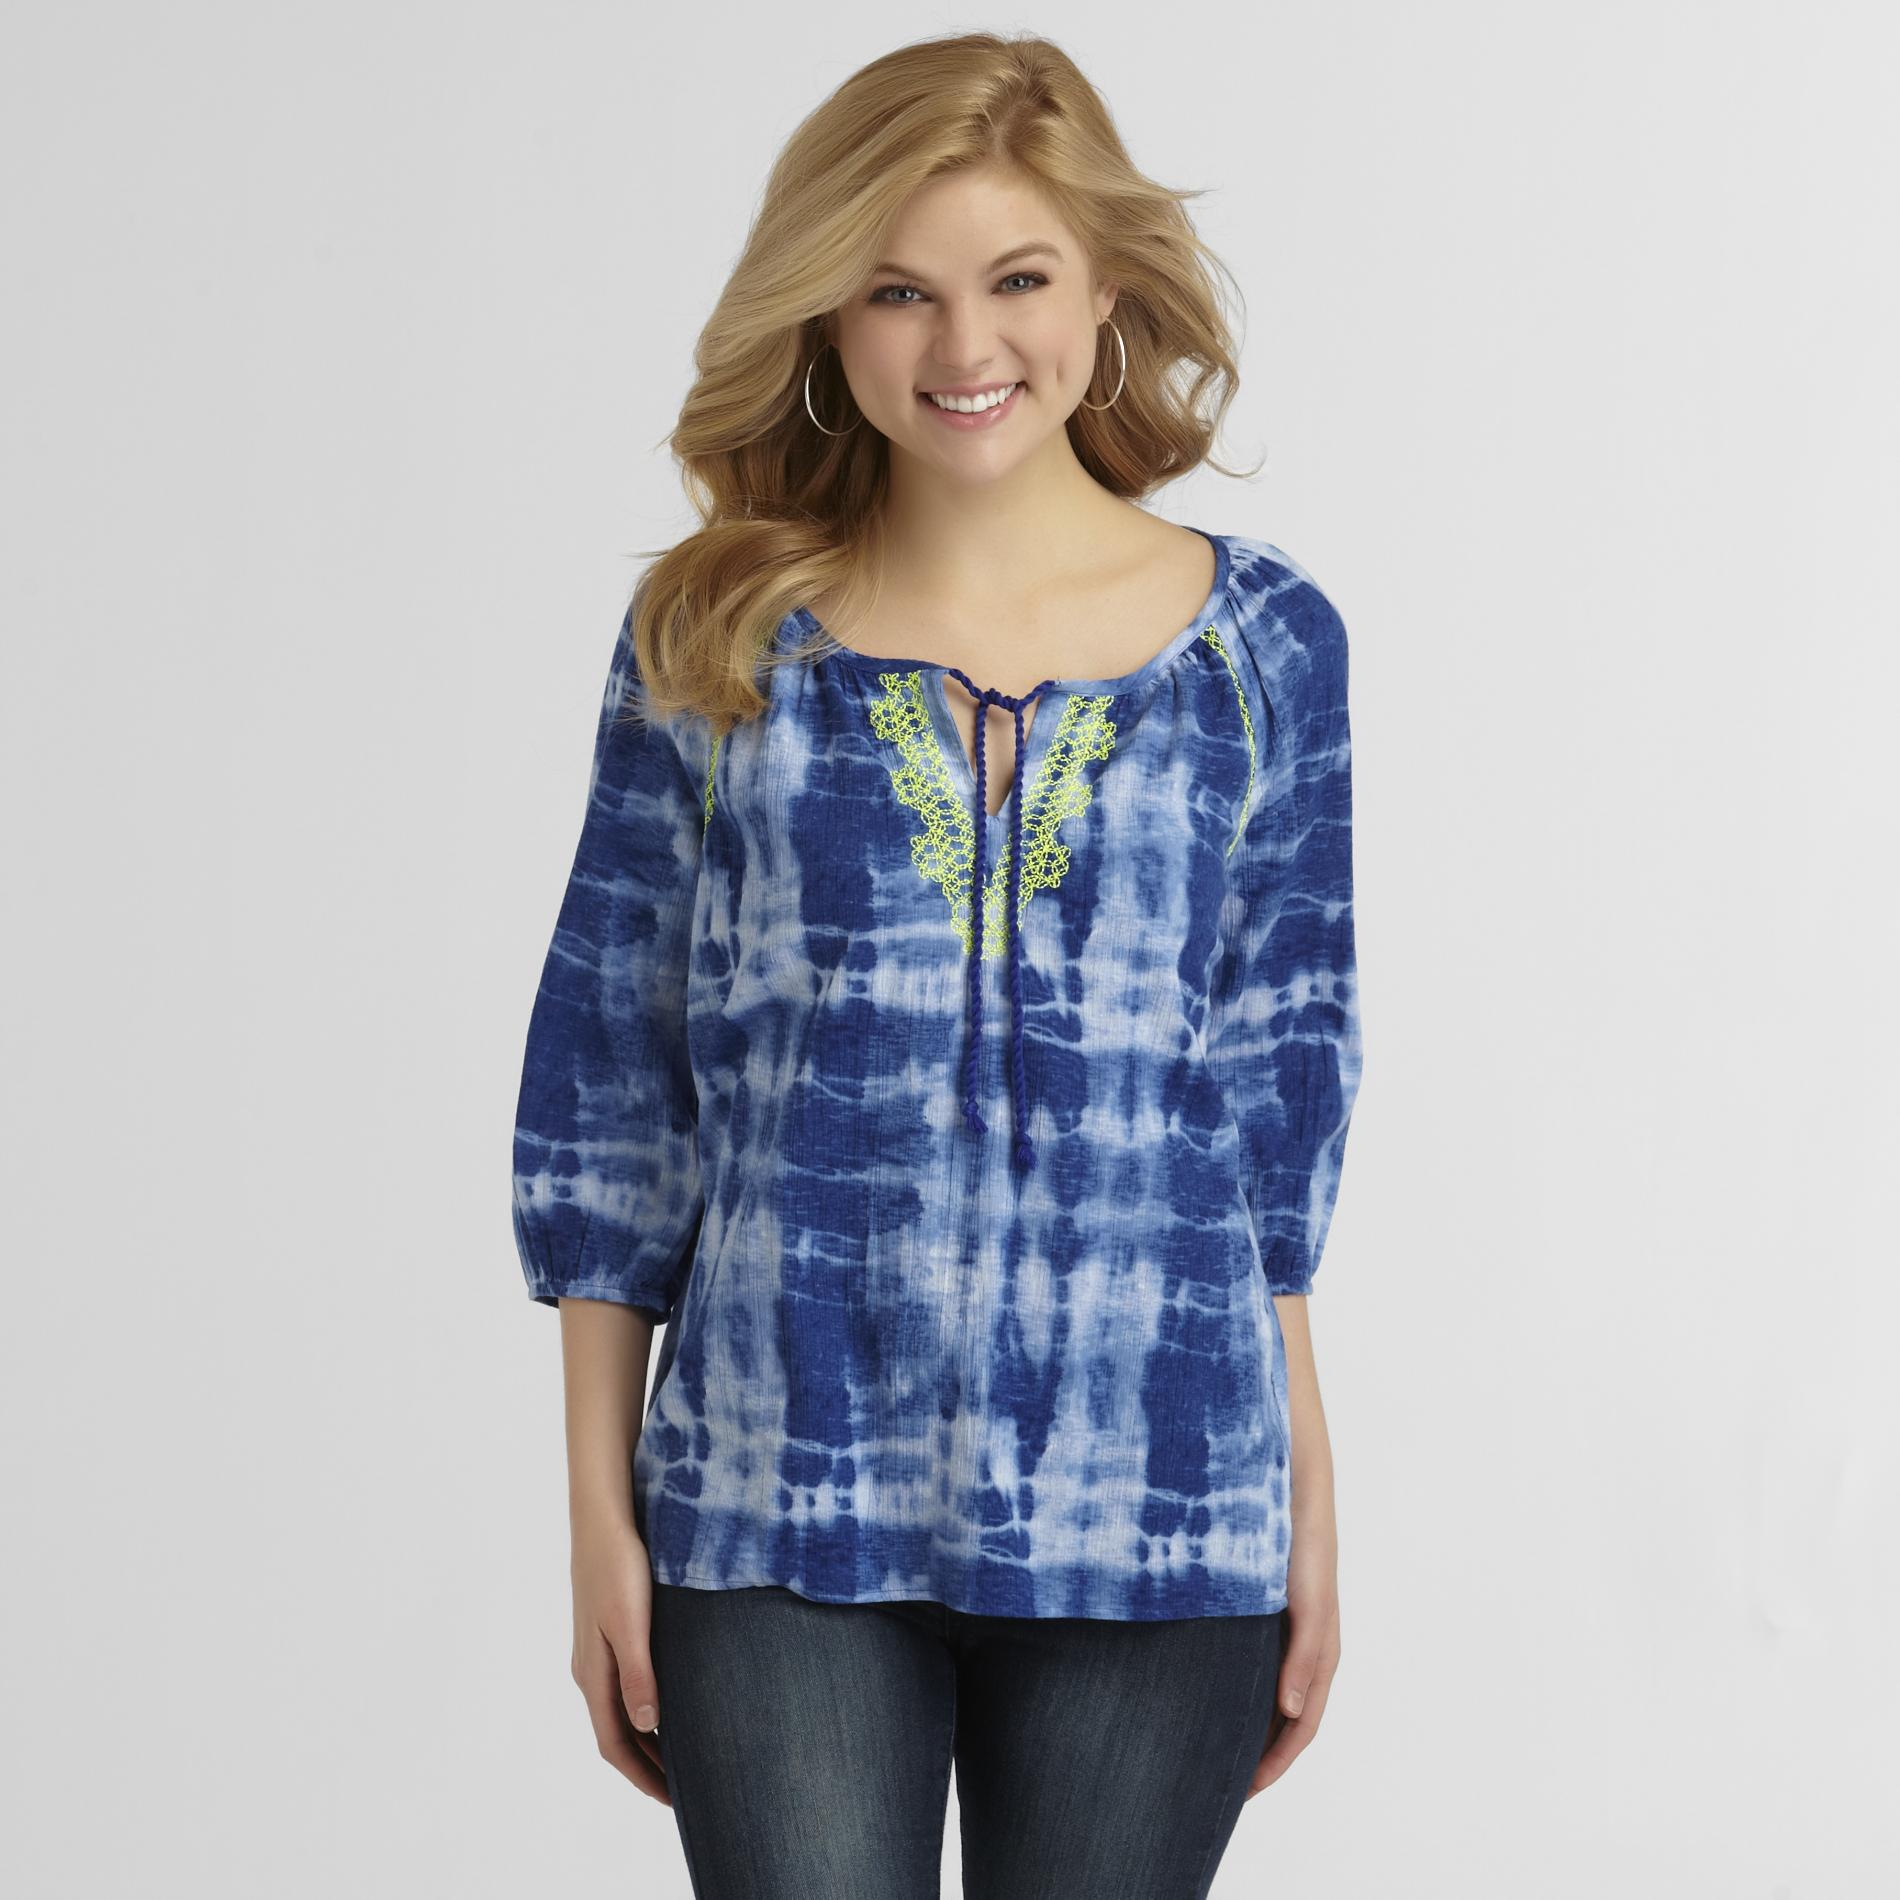 Route 66 Women's Peasant Top - Tie-Dye at Kmart.com